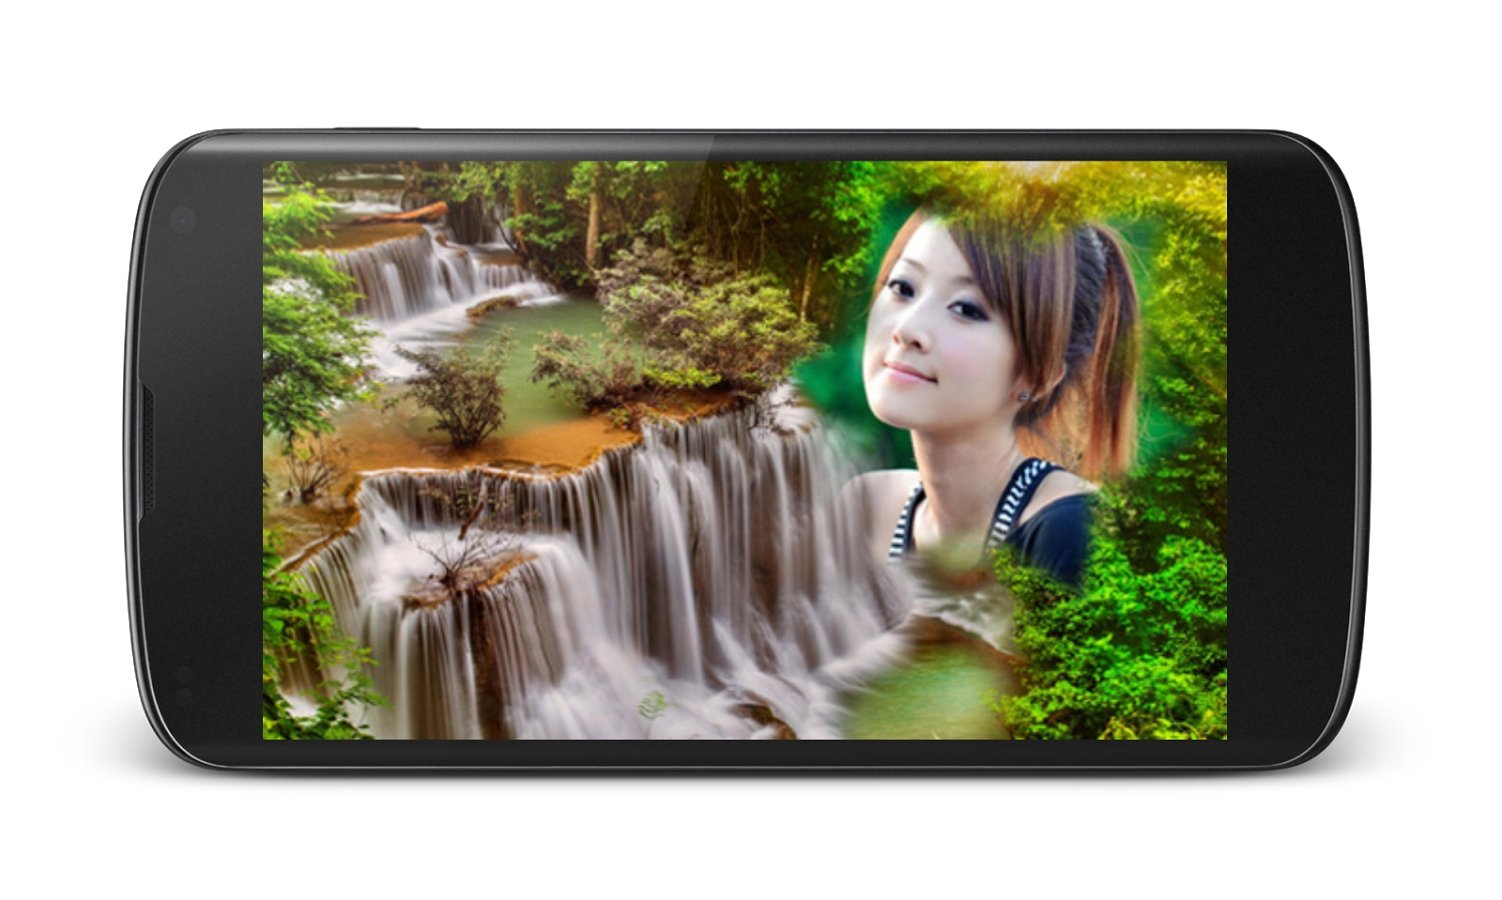 Waterfall Photo Frames Android image 4